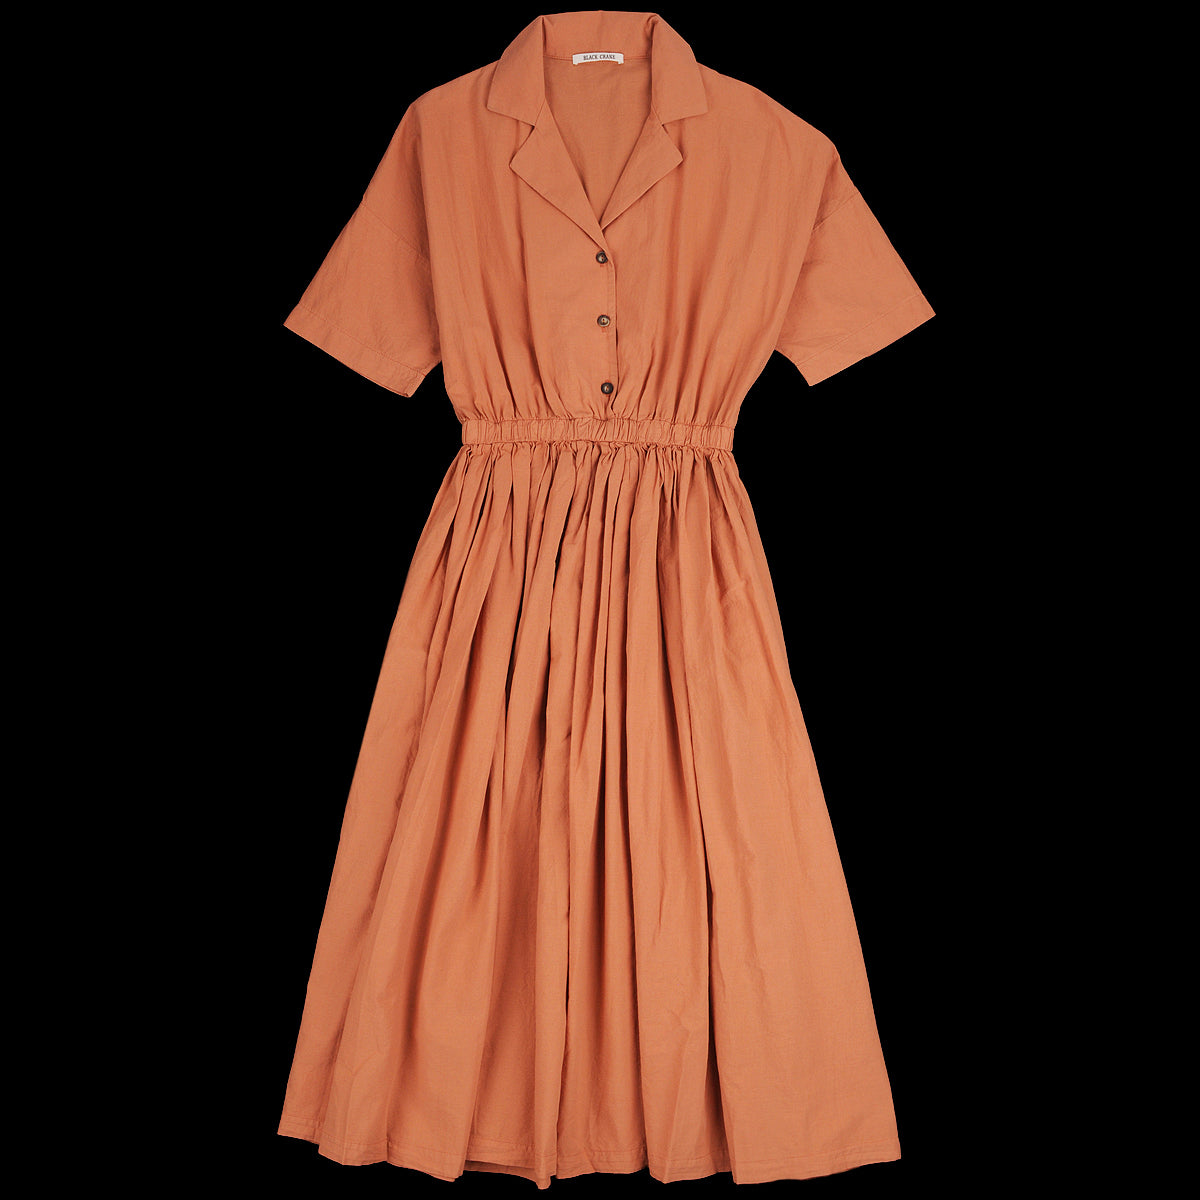 Black Crane Classy Dress In Coral Unionmade